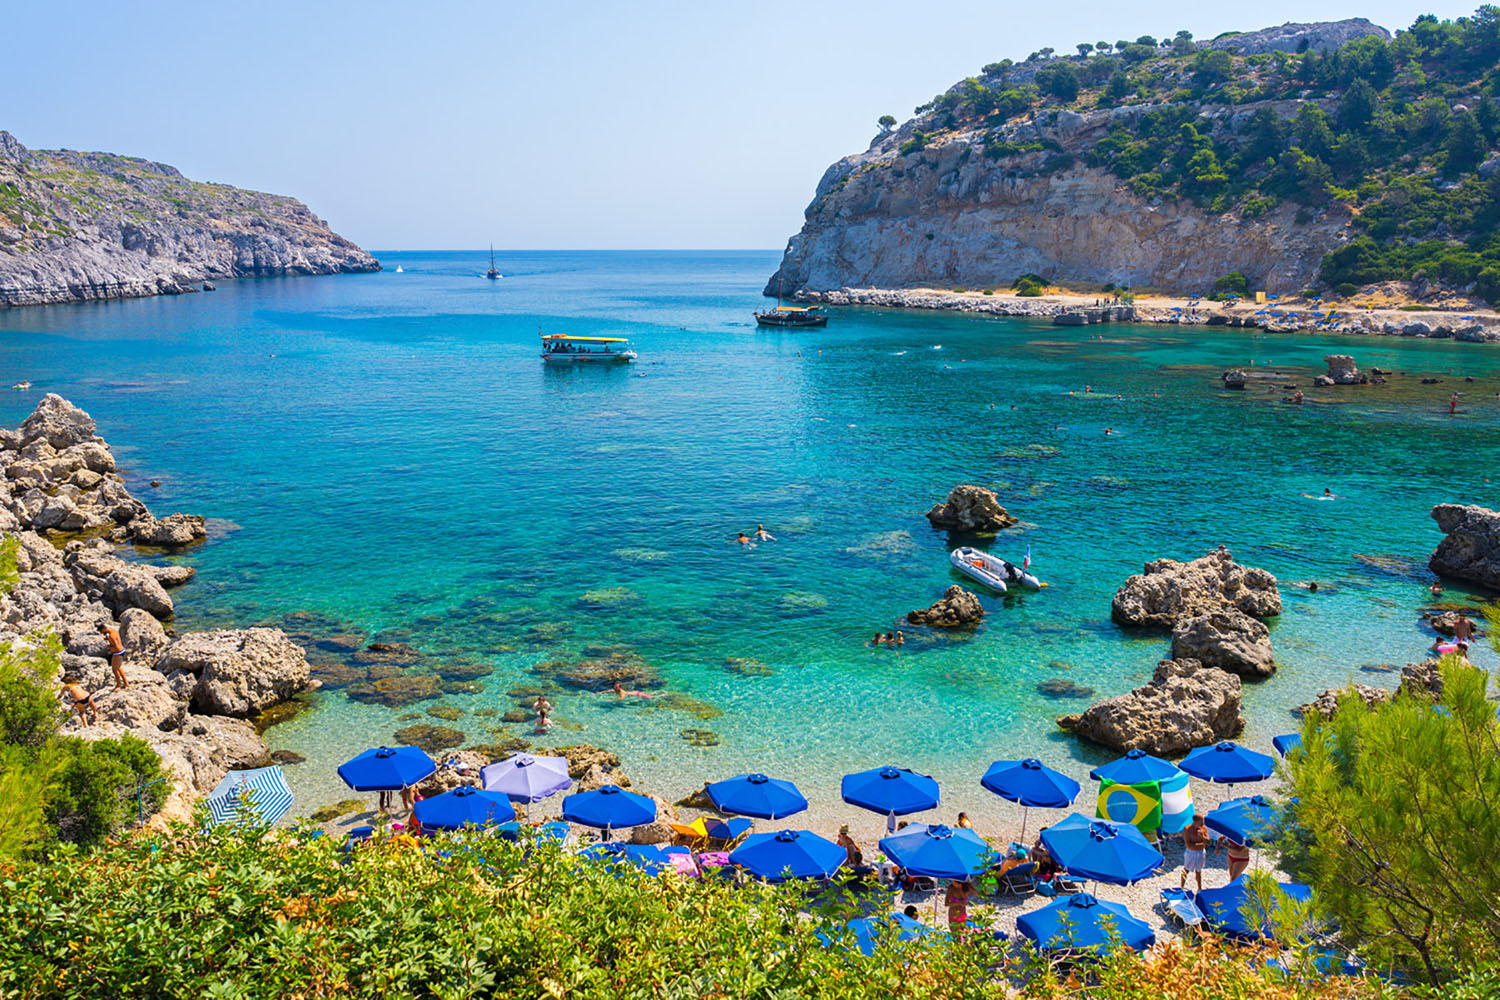 Greece is home to some of the best beaches in the world.